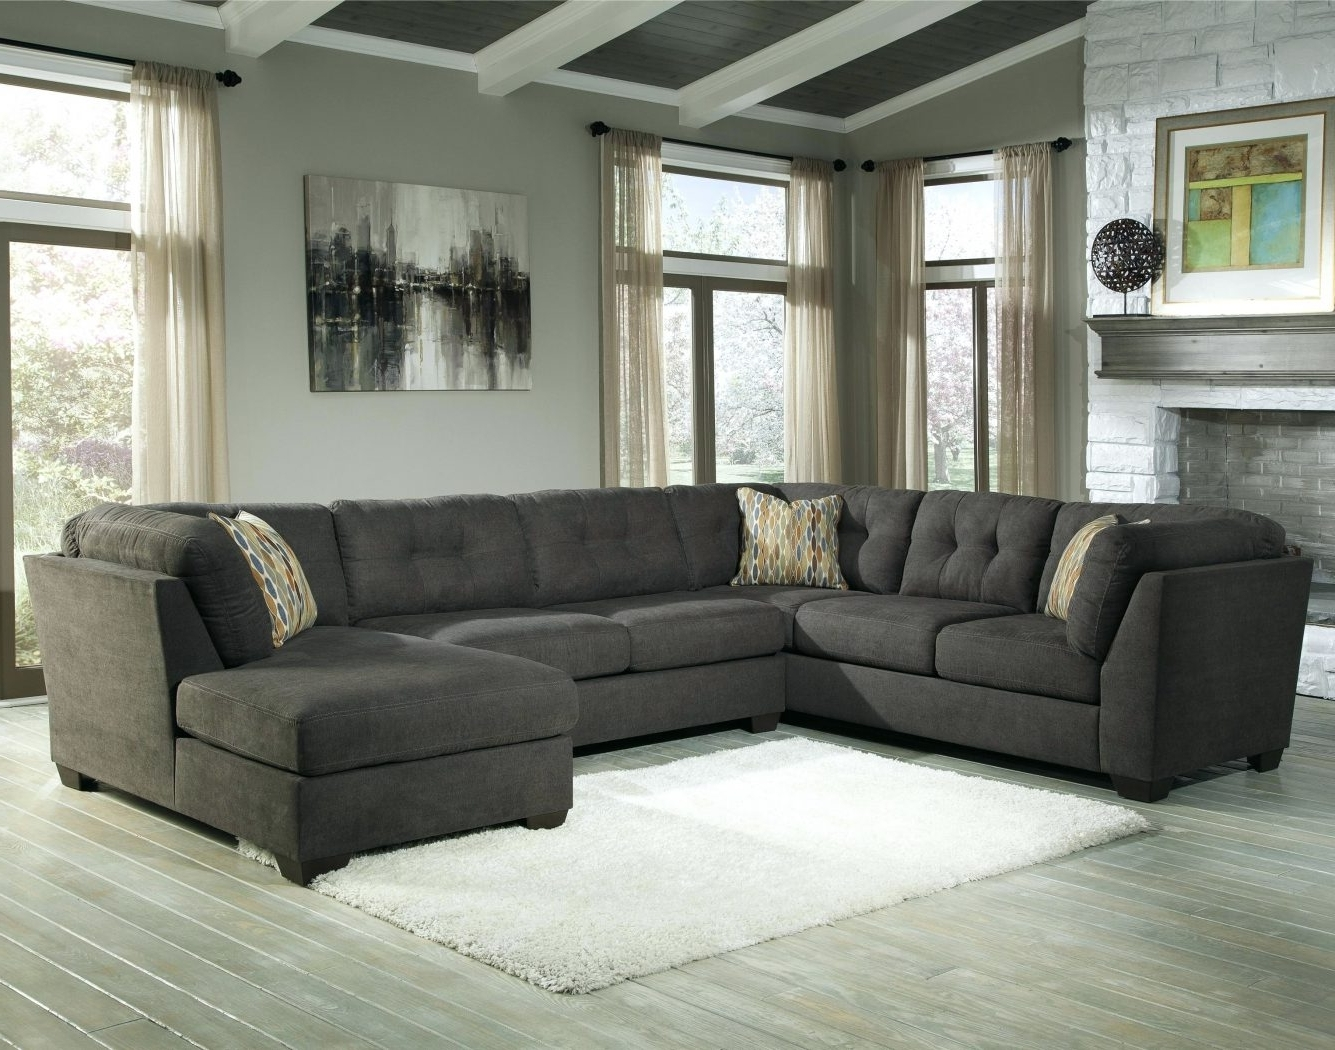 Huge Sofas – Home Design Ideas And Pictures Inside Most Recently Released Huge Sofas (View 6 of 15)